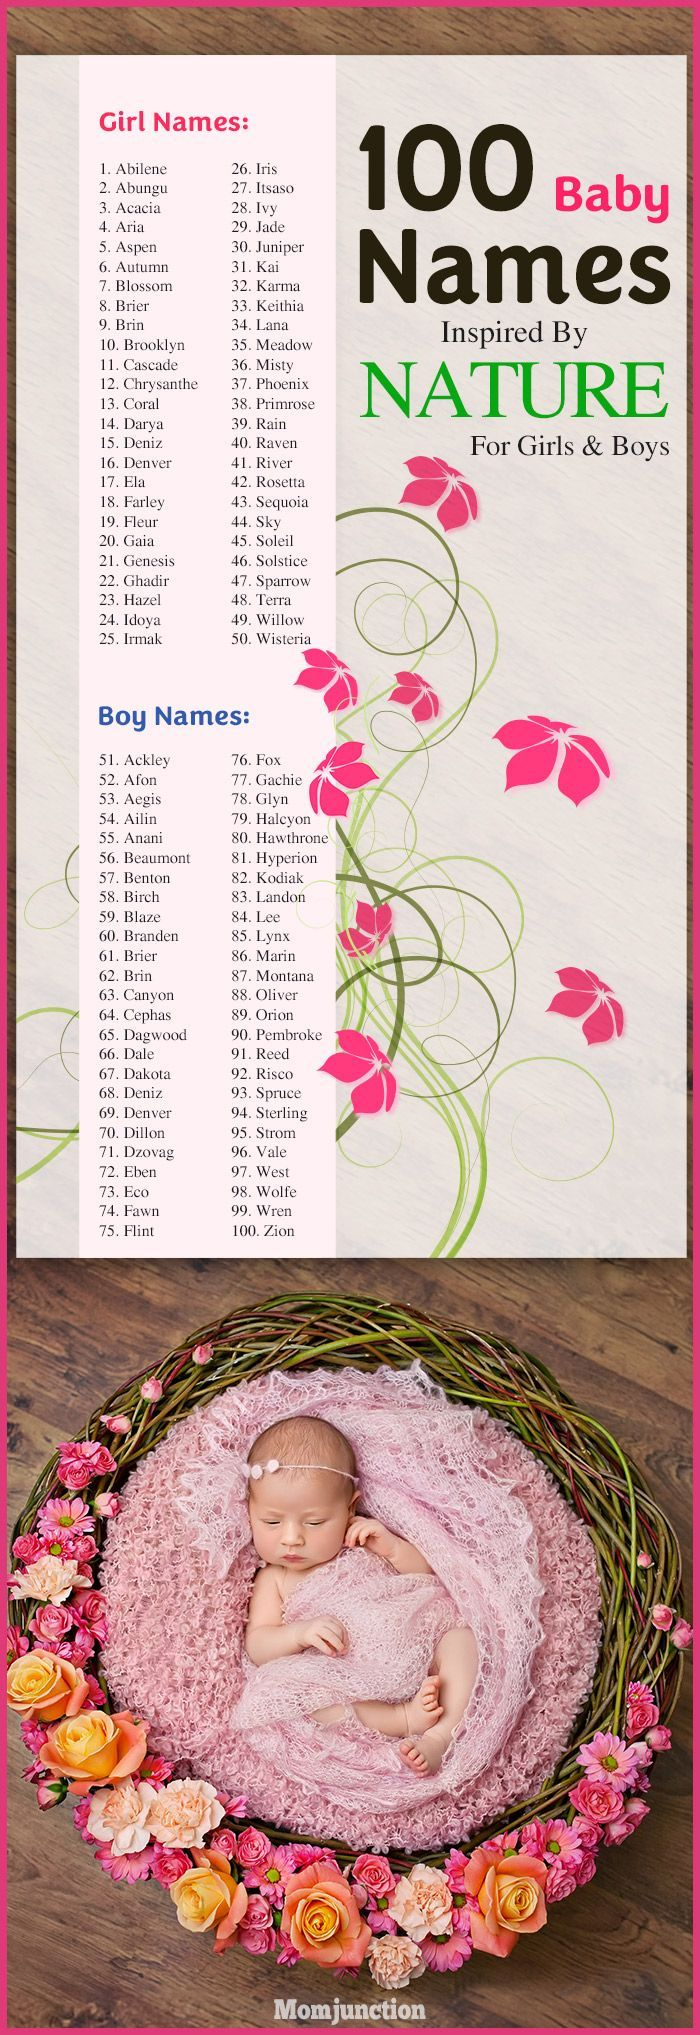 Nature Baby Names: 100 Wondrous Nature Names For Girls And